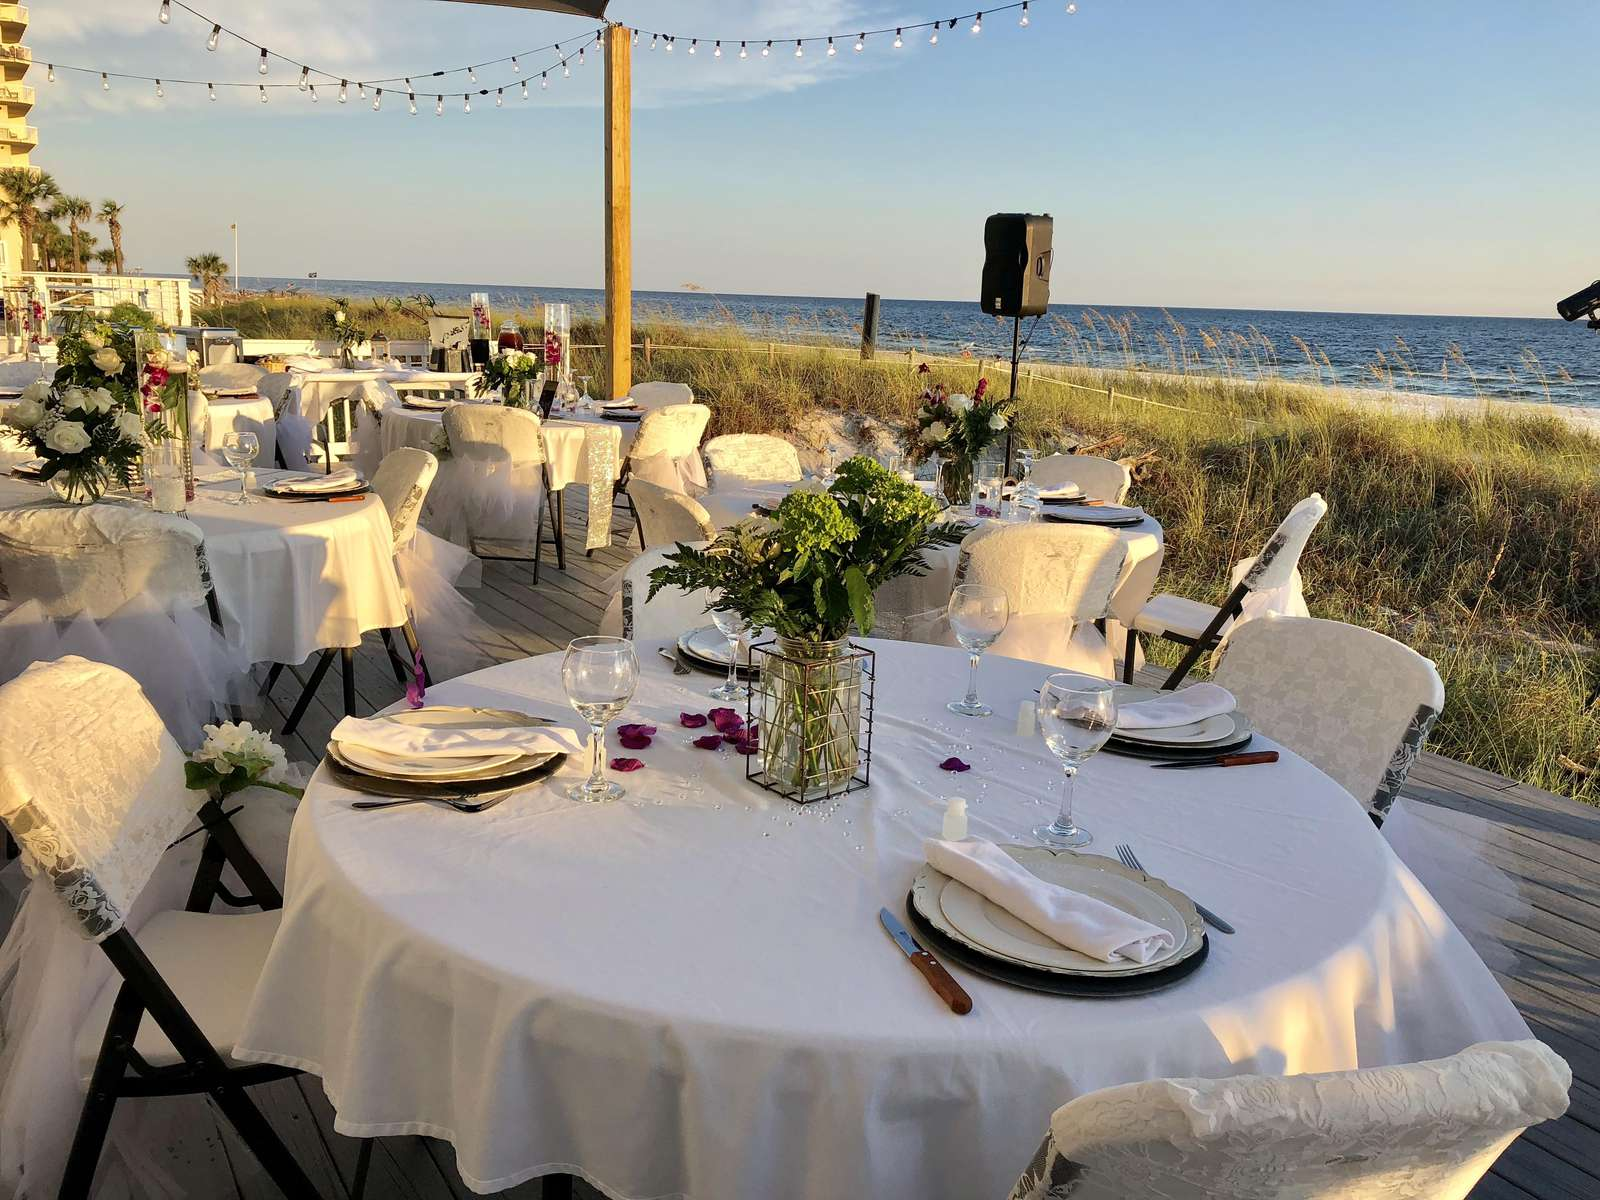 Beautiful wedding reception for 50 people on back deck -overlooking the gulf